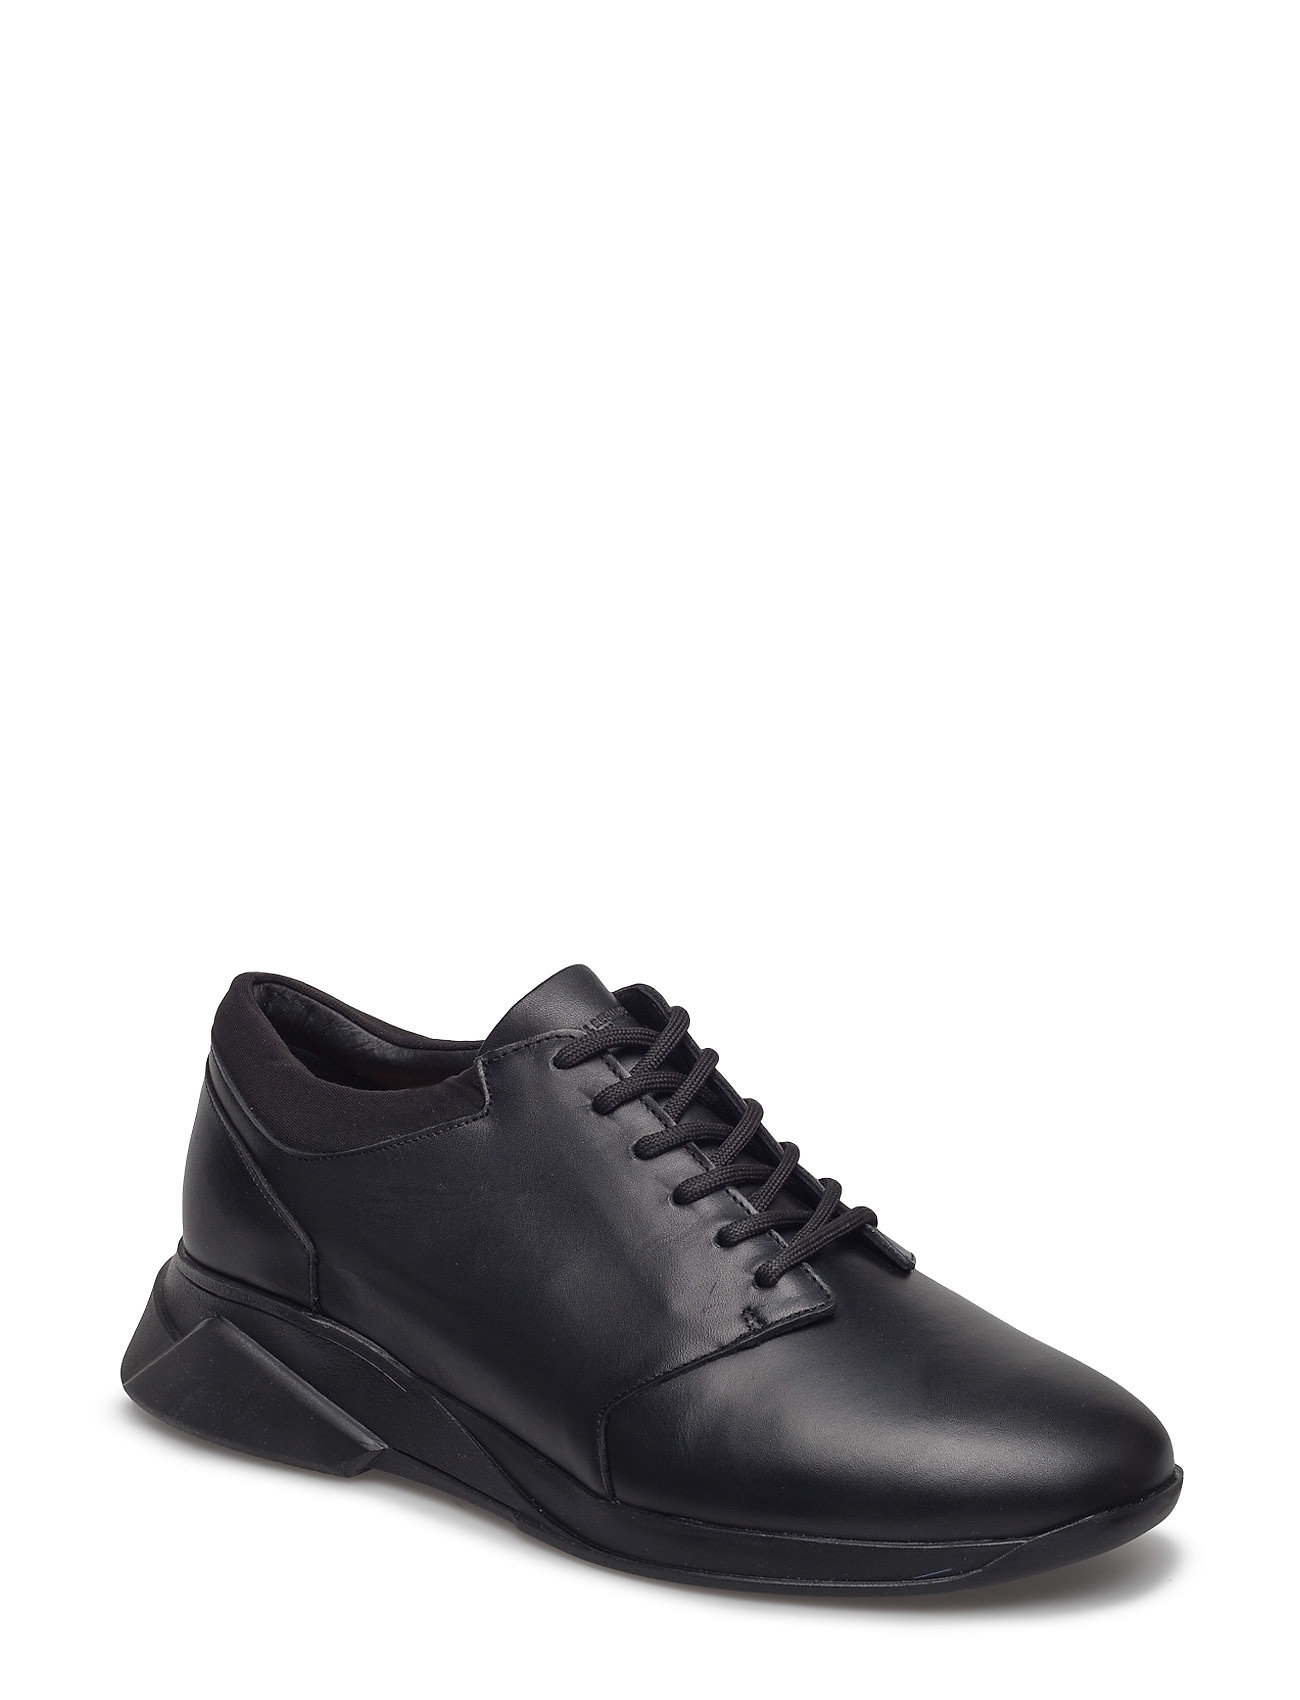 Force Derby Shoe Men Royal RepubliQ Sneakers til Herrer i Sort